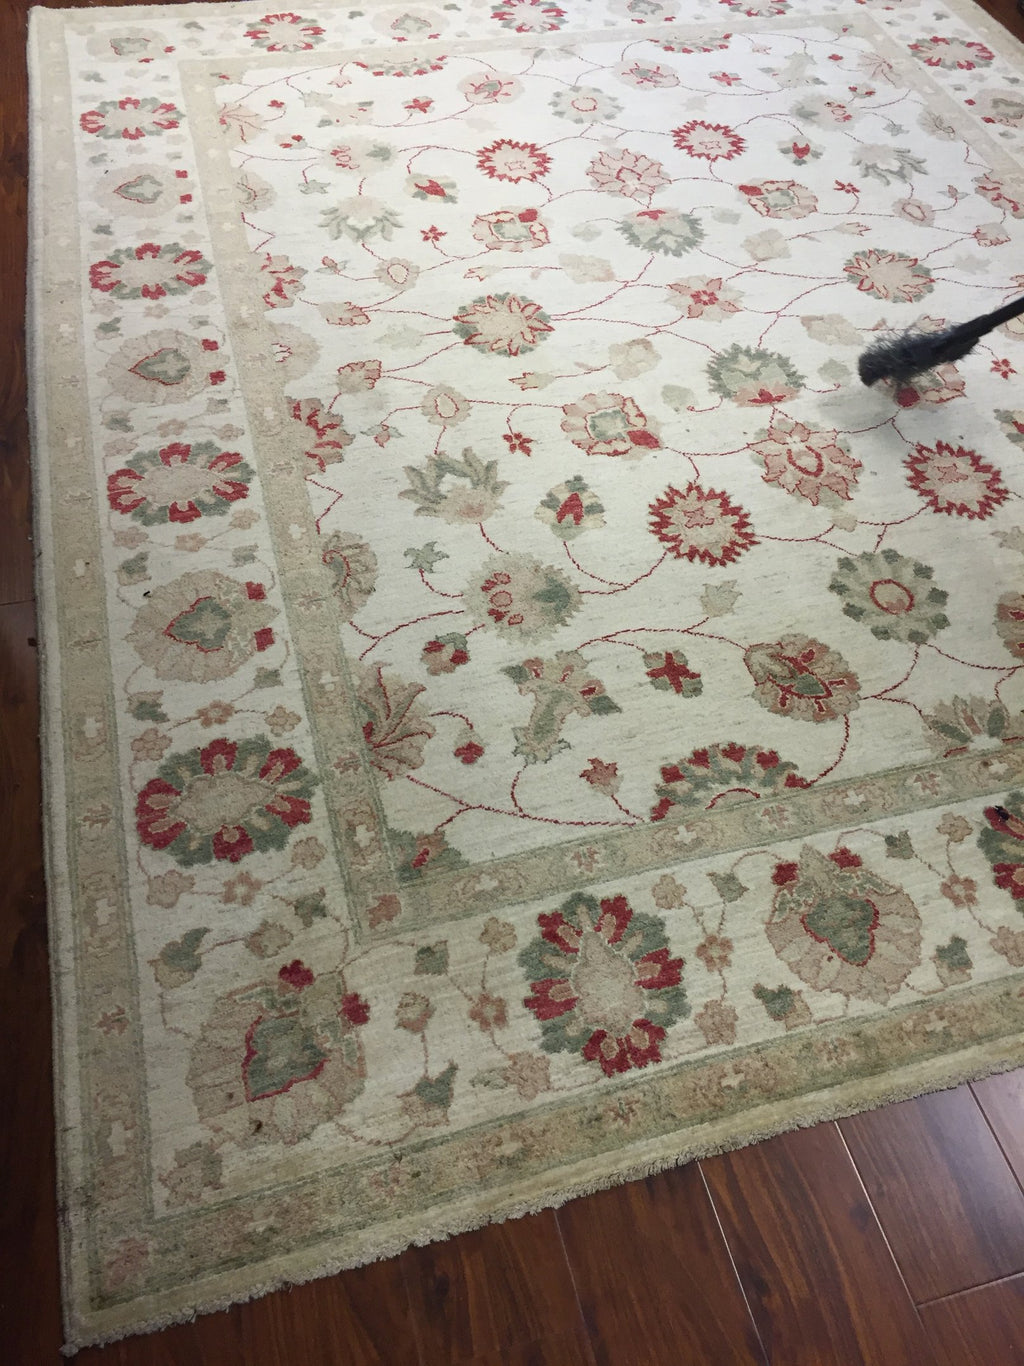 Authentic Handmade fine Pakistan Rug-Real Wool Allover Floral Pattern Faded/Vintage-Ivory/Multi-(8.2 by 9.10 Feet)